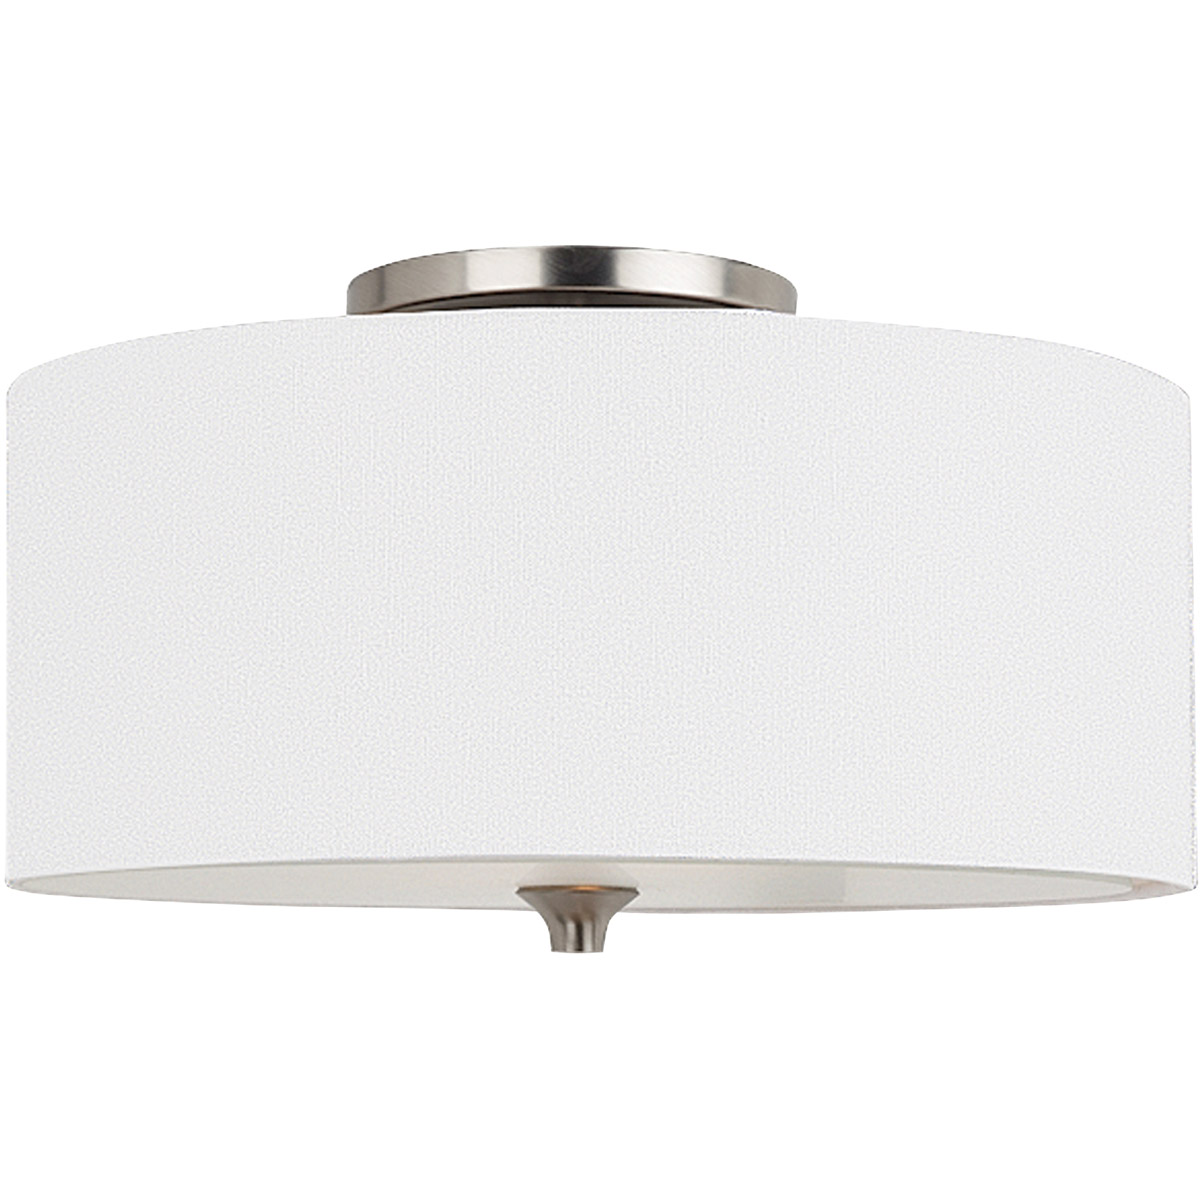 Sea Gull Lighting Stirling 2 Light Flush Mount in Brushed Nickel 75952-962